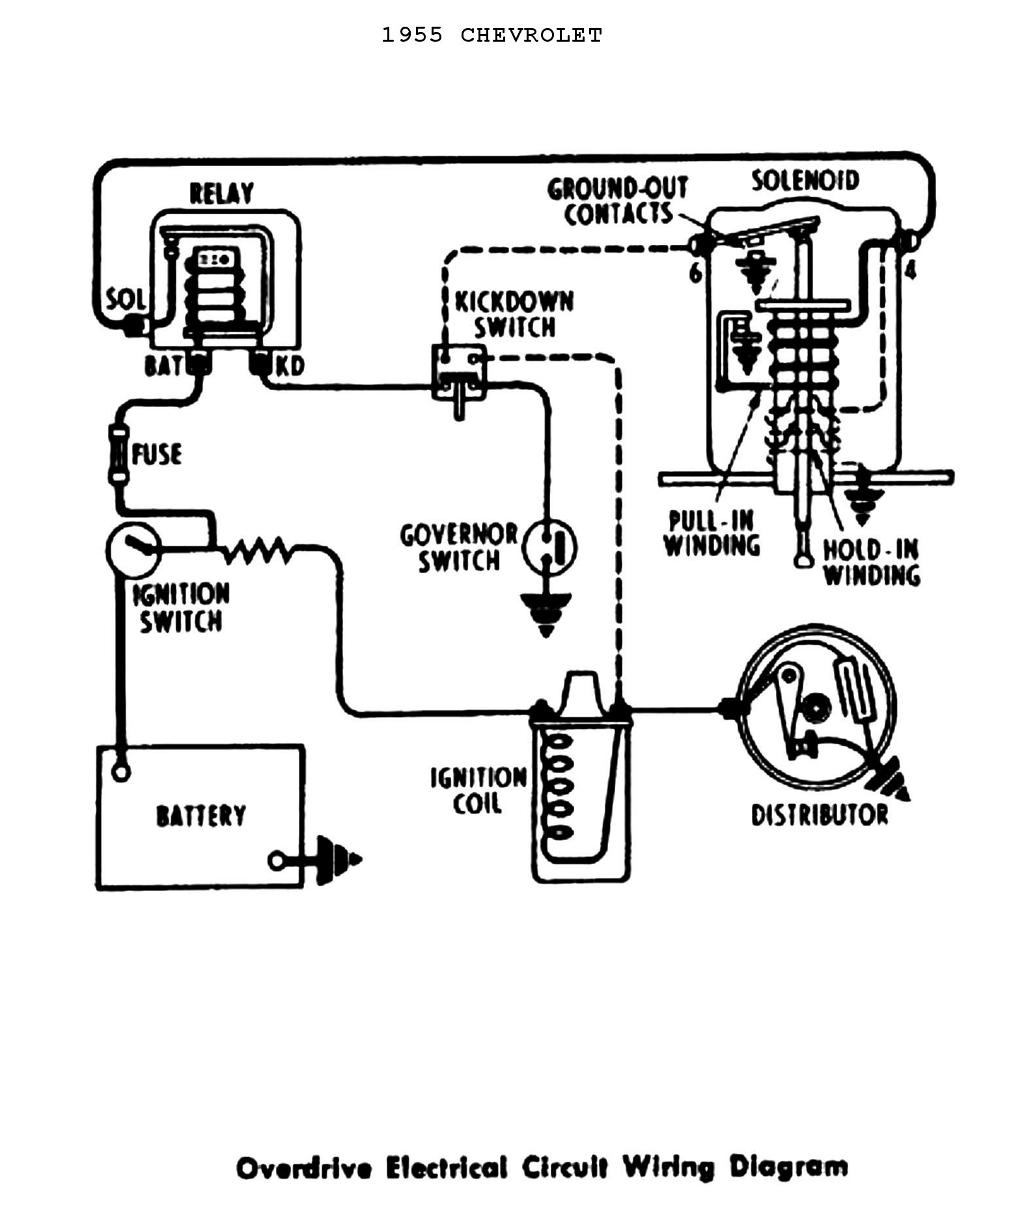 hight resolution of related with gm hei tachometer wiring diagram free picture